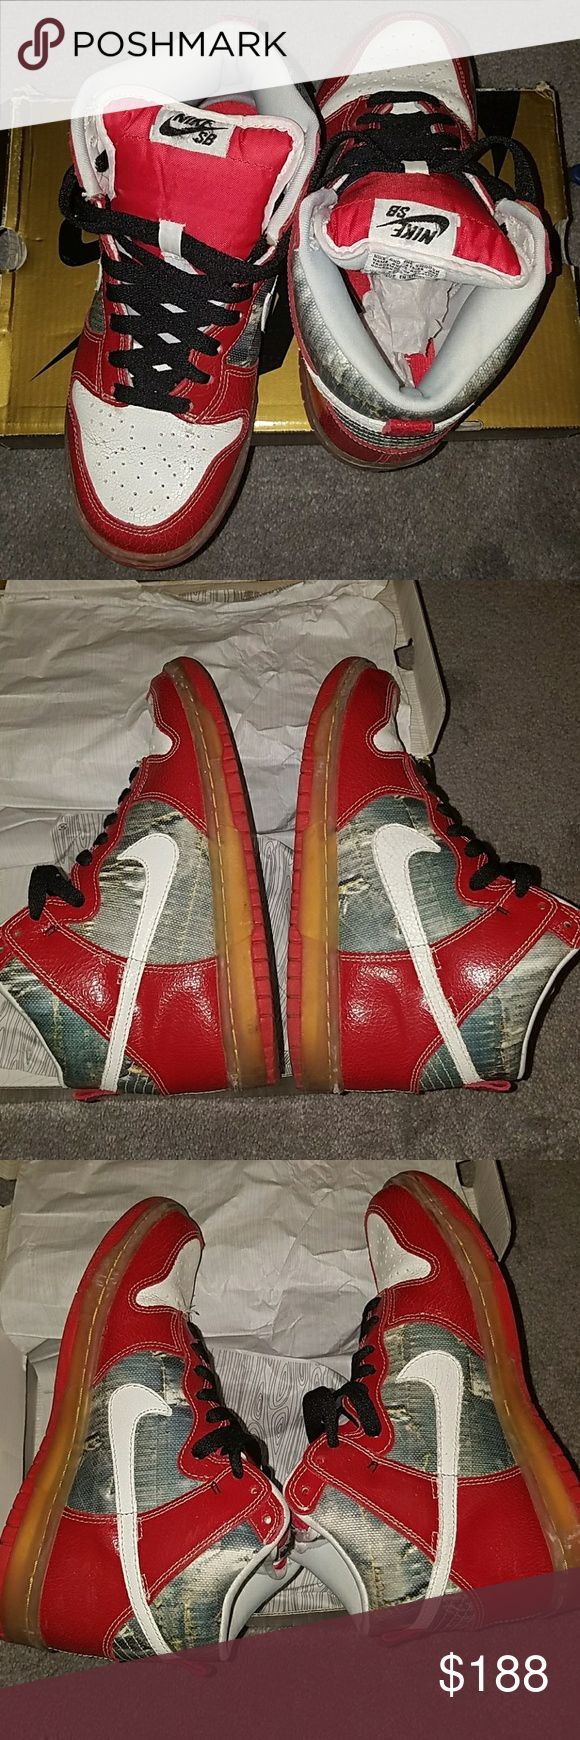 """Nike dunks """"Shoe Goo"""" 100% authentic with original box, paper lining,and  extra laces( 1. Yellow 2. Reversable red and white 3. Black)  These have only been worn 3 times. Tattered look is part of the shoe design. These dunks are super comfortable and show very low to no  signs of wear. Its in great condition, no if's, and's or but's. Serious buyers only! Nike  Shoes Sneakers"""